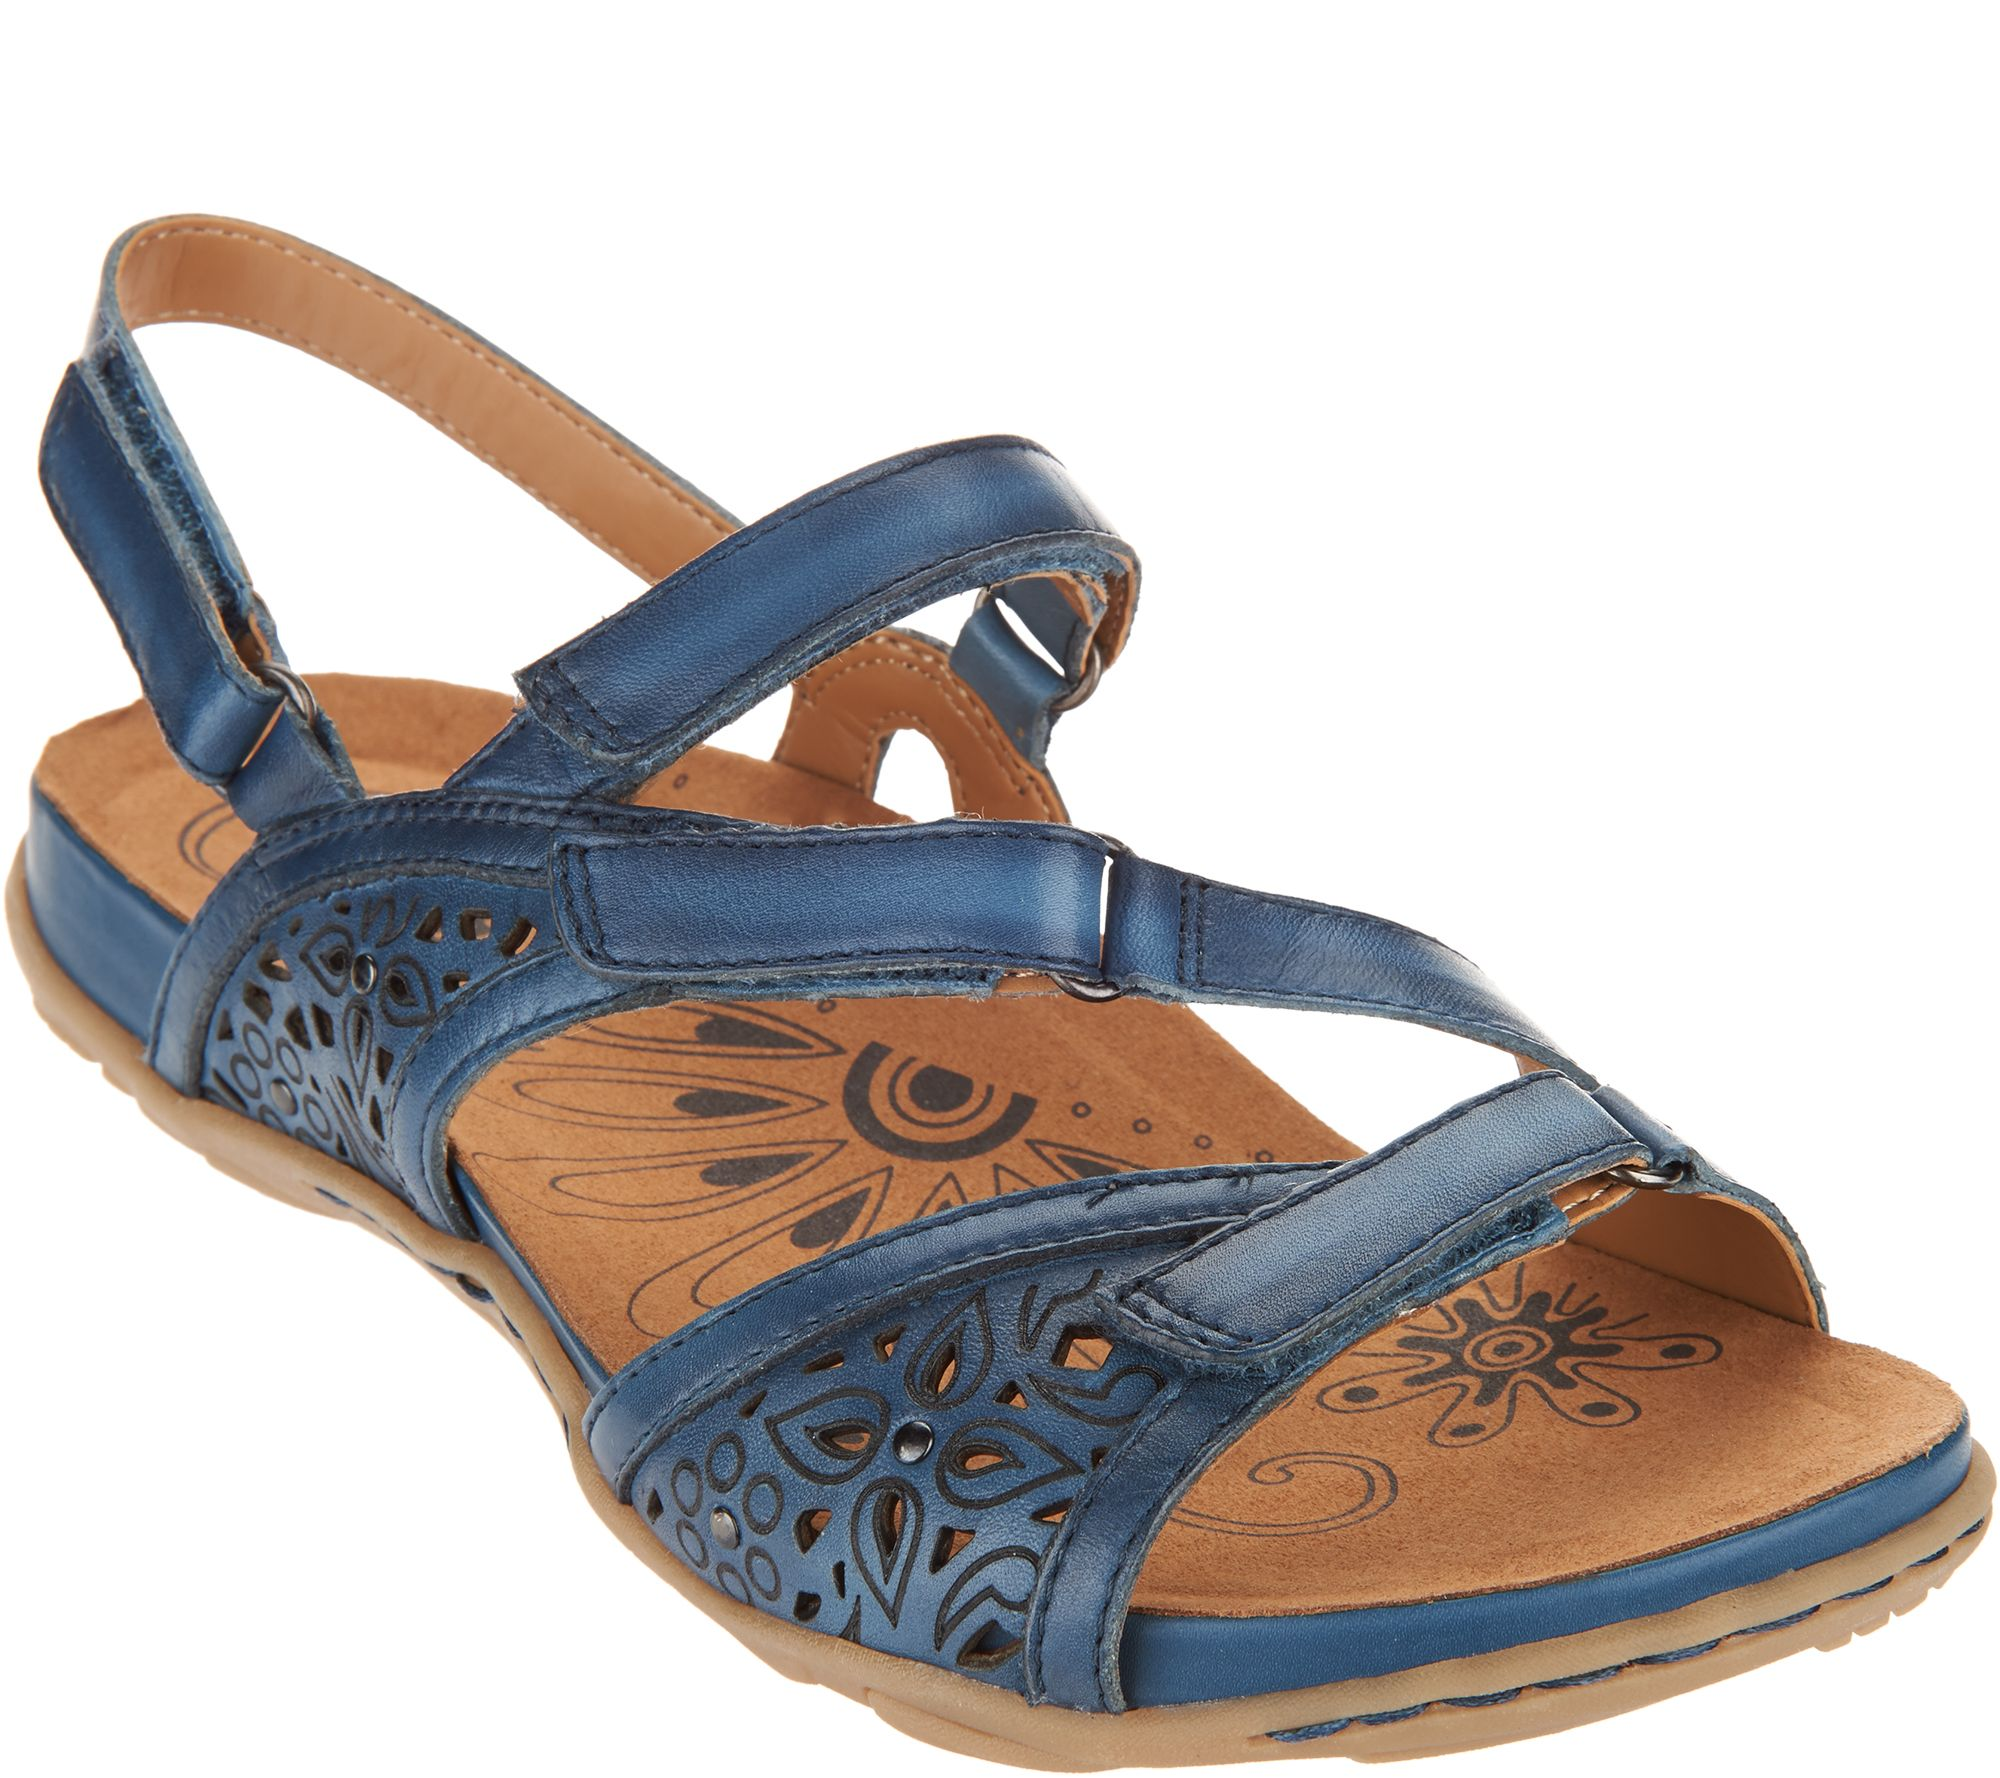 37099aacb10d Earth Leather Multi-strap Sandals - Maui - Page 1 — QVC.com